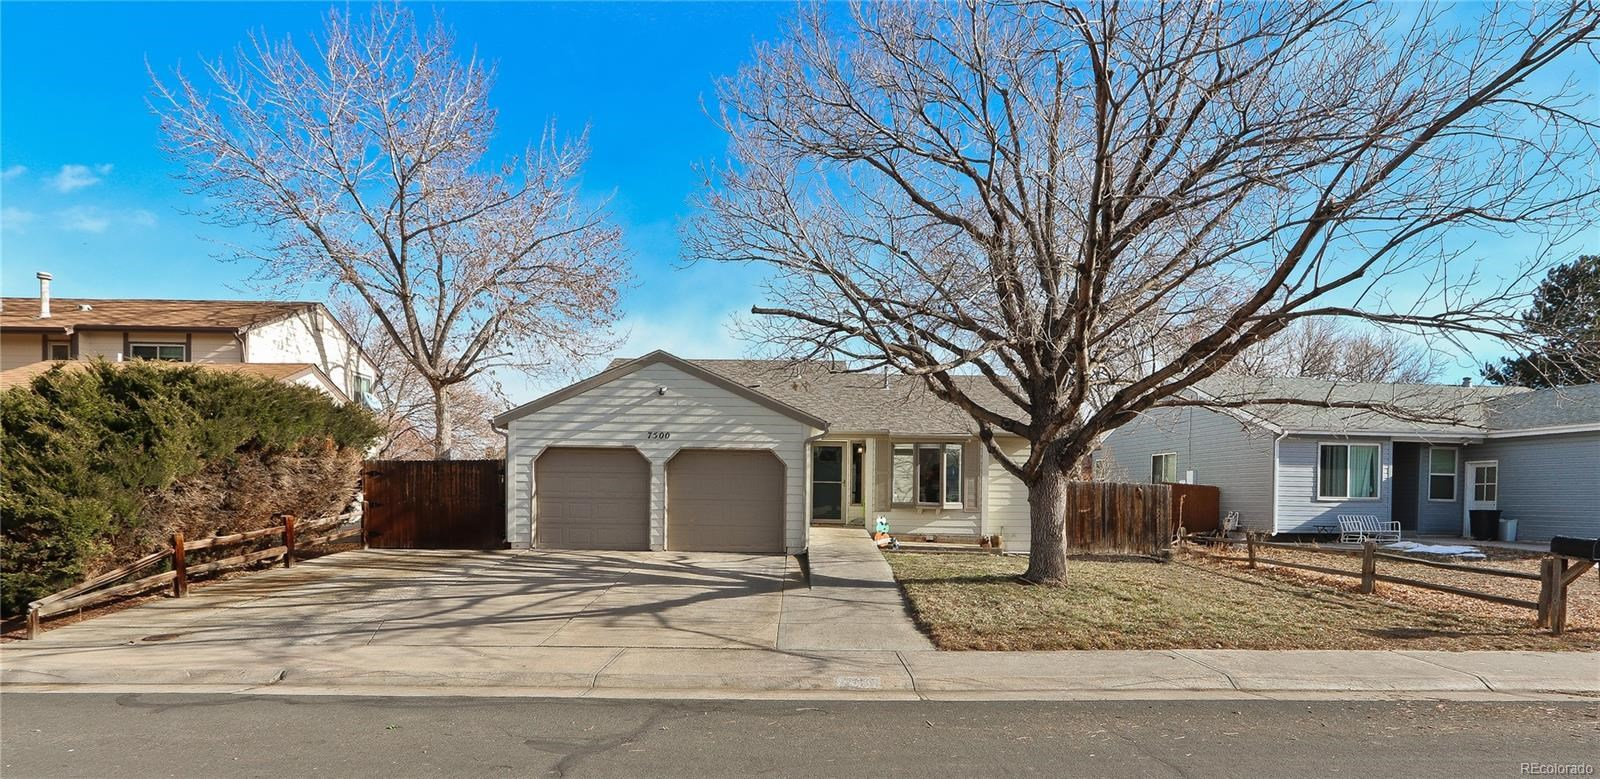 MLS# 9811960 - 1 - 7500 Chase Street, Arvada, CO 80003